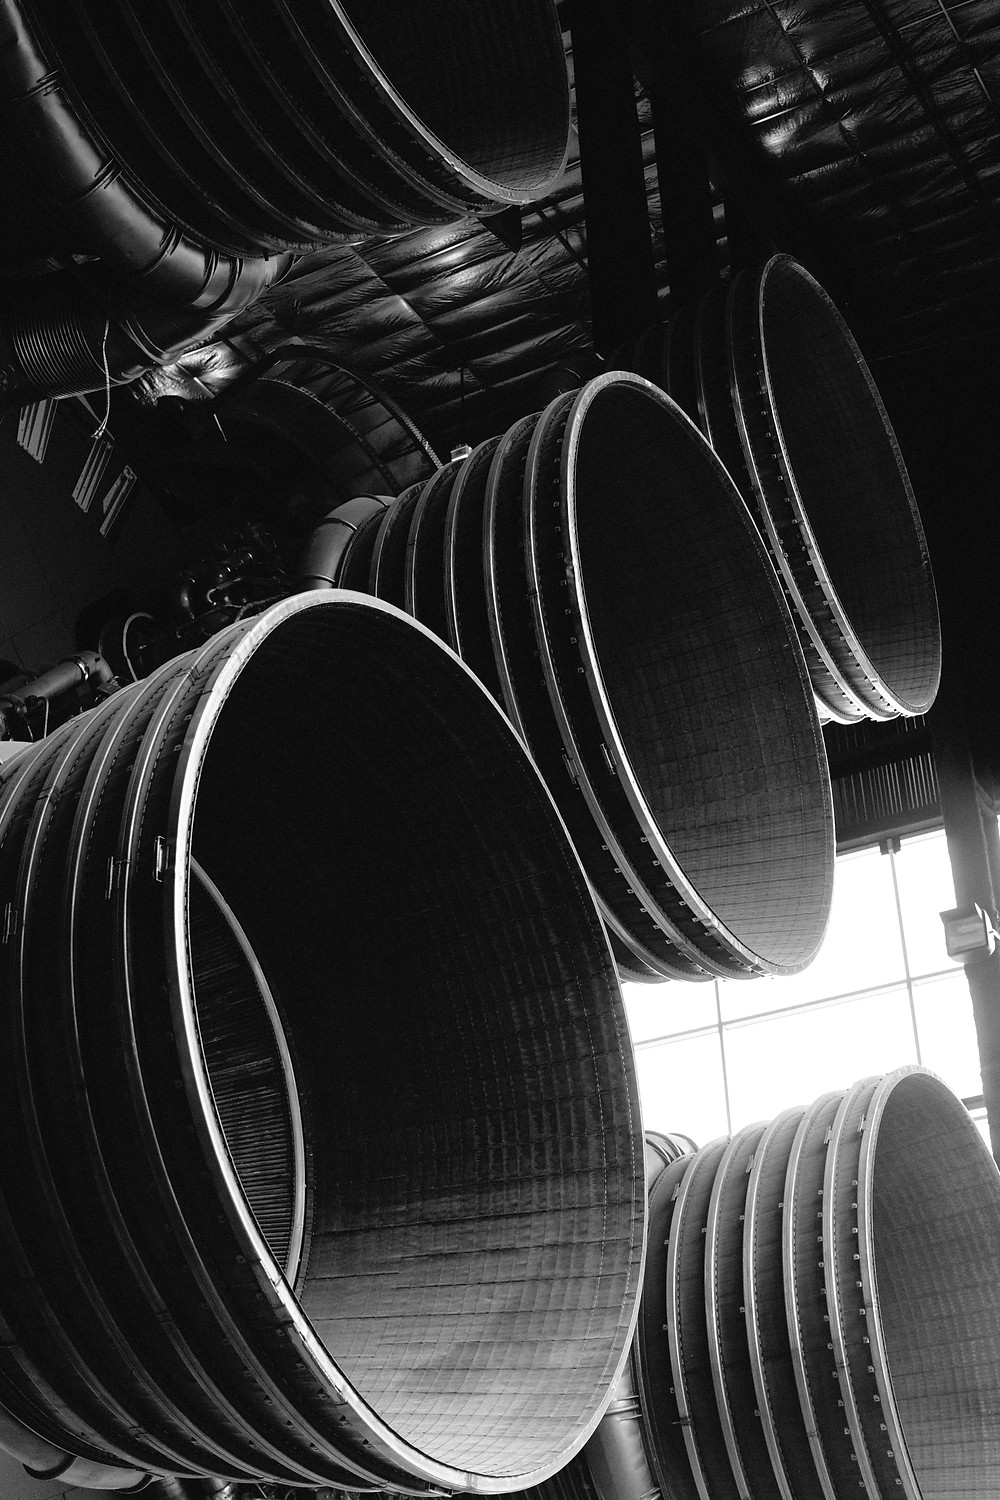 Close up of the Saturn V's engines, filling the frame